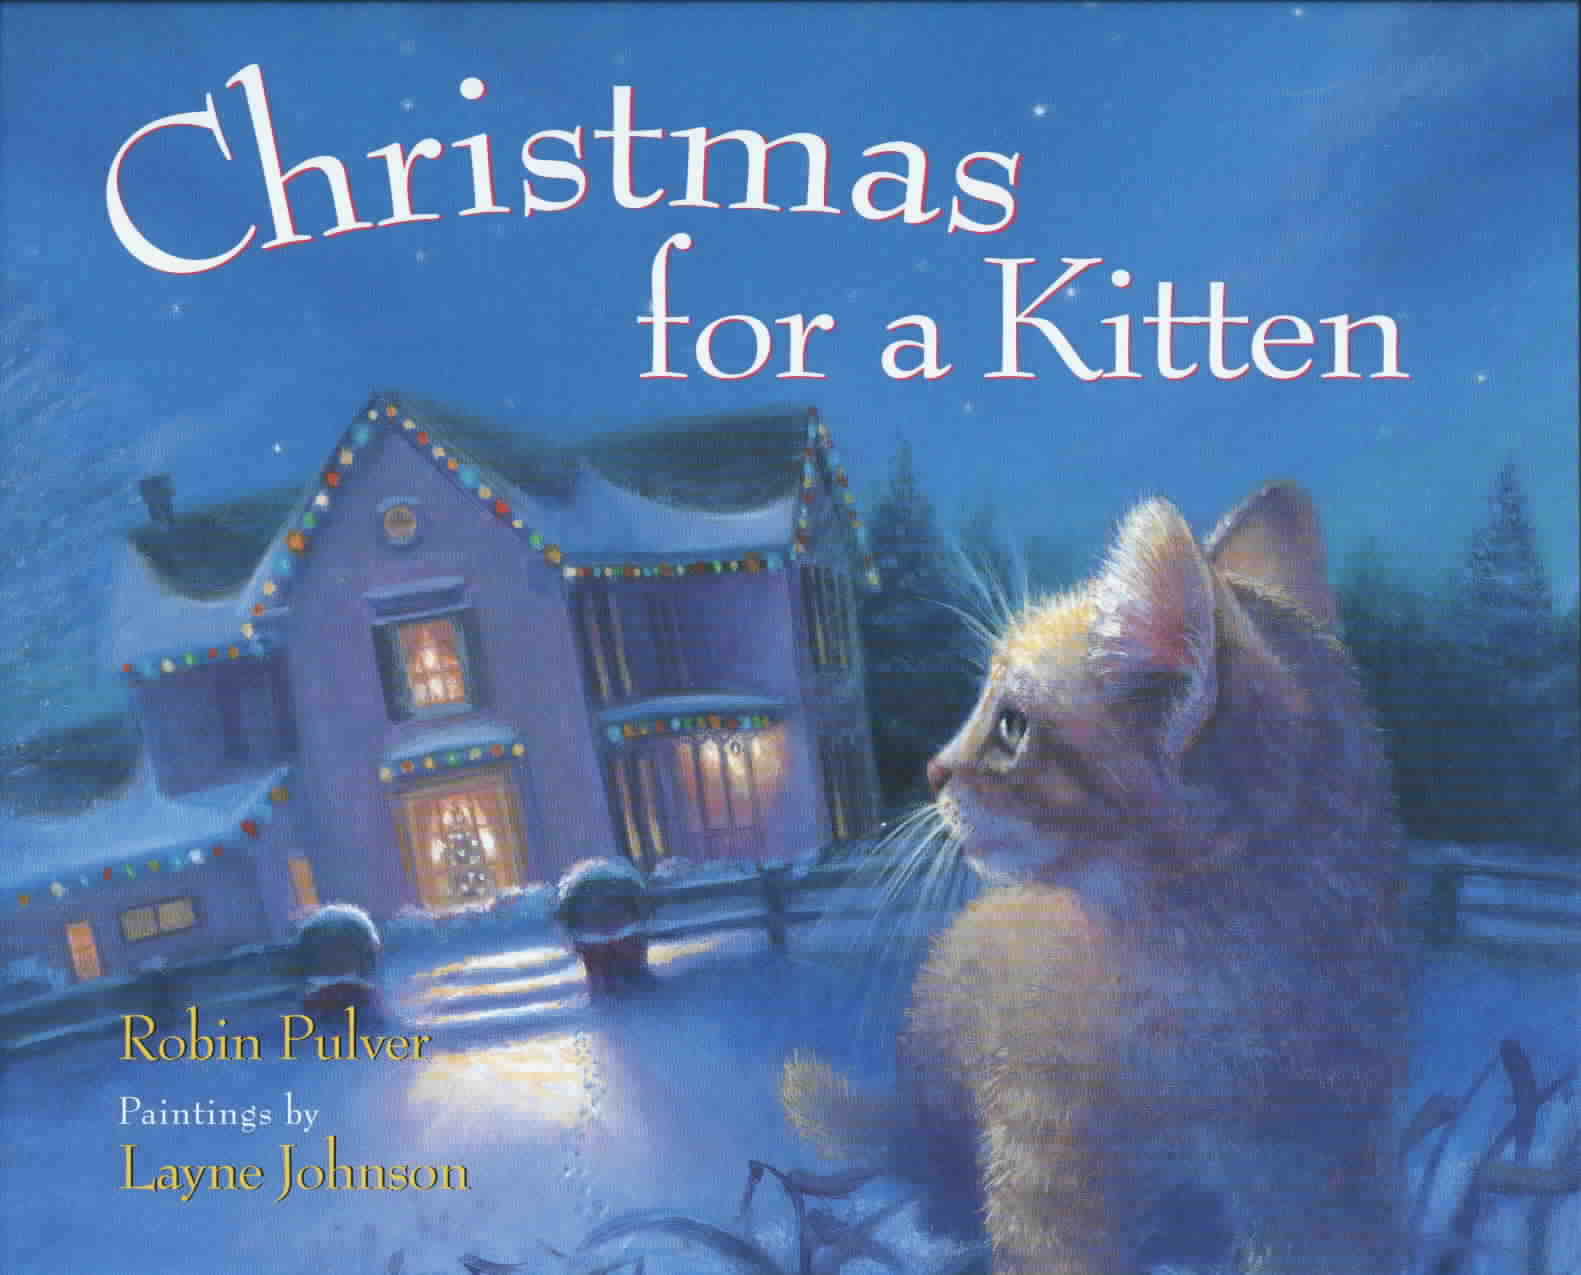 Christmas_for_a_kitten